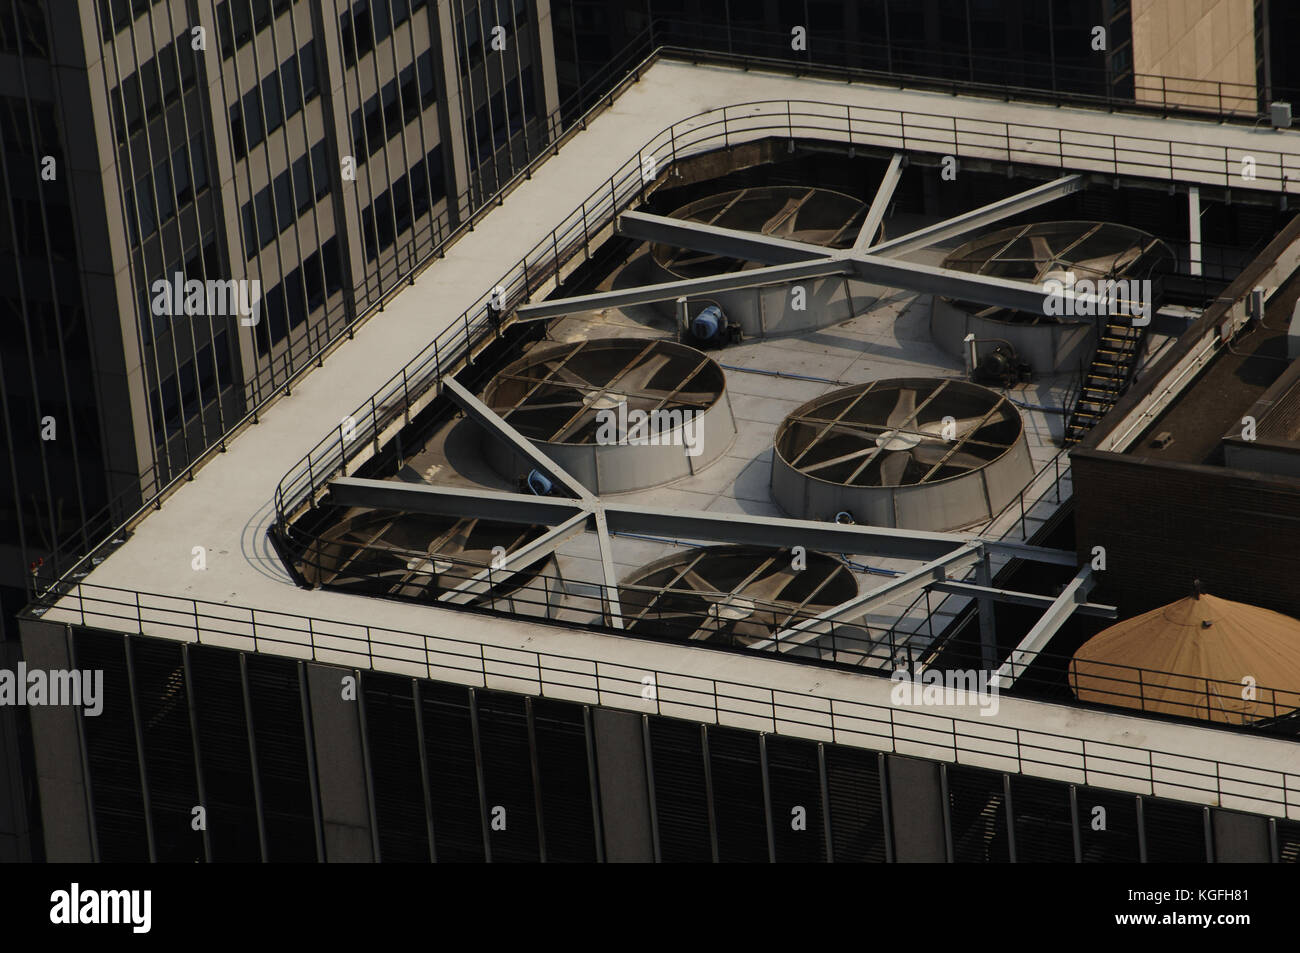 United States. New York. Cooling and ventilation systems of a skyscraper. Manhattan. - Stock Image